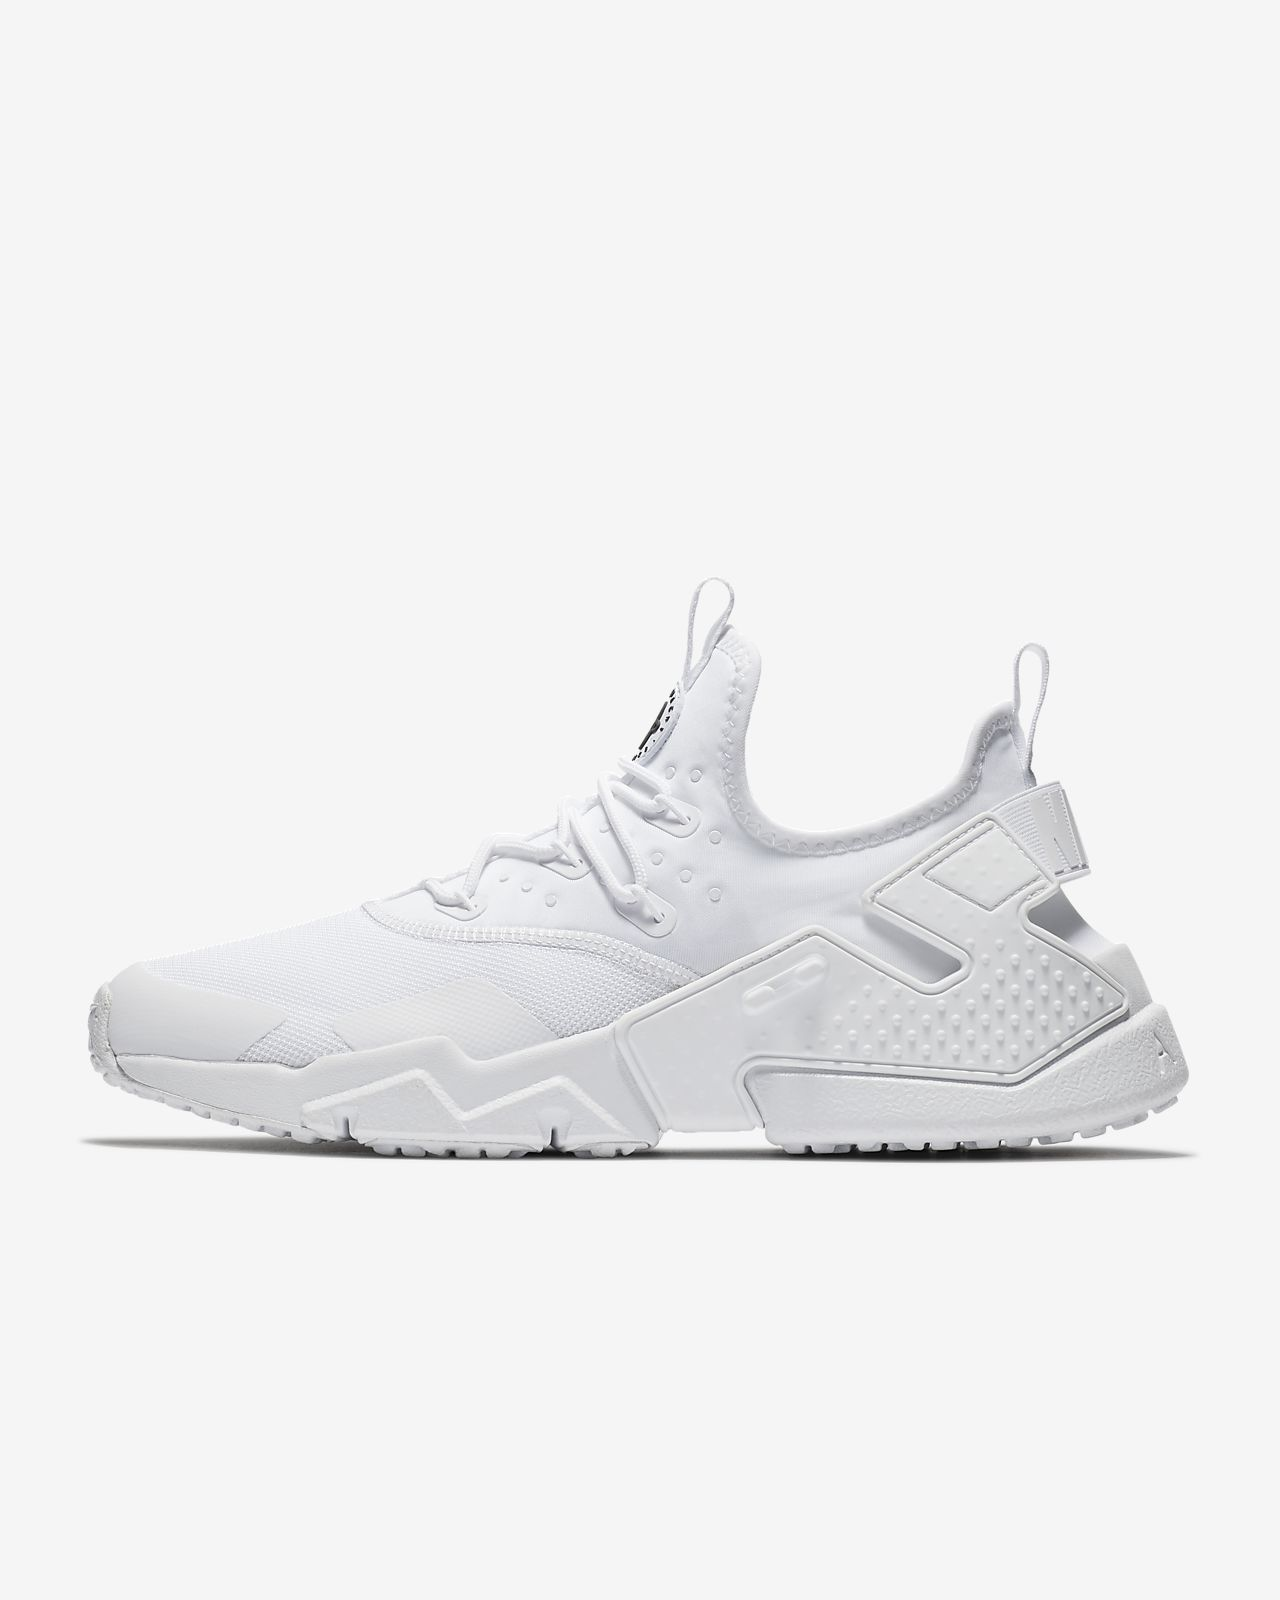 3ec5a5e2ad08 Nike Air Huarache Drift Men s Shoe. Nike.com